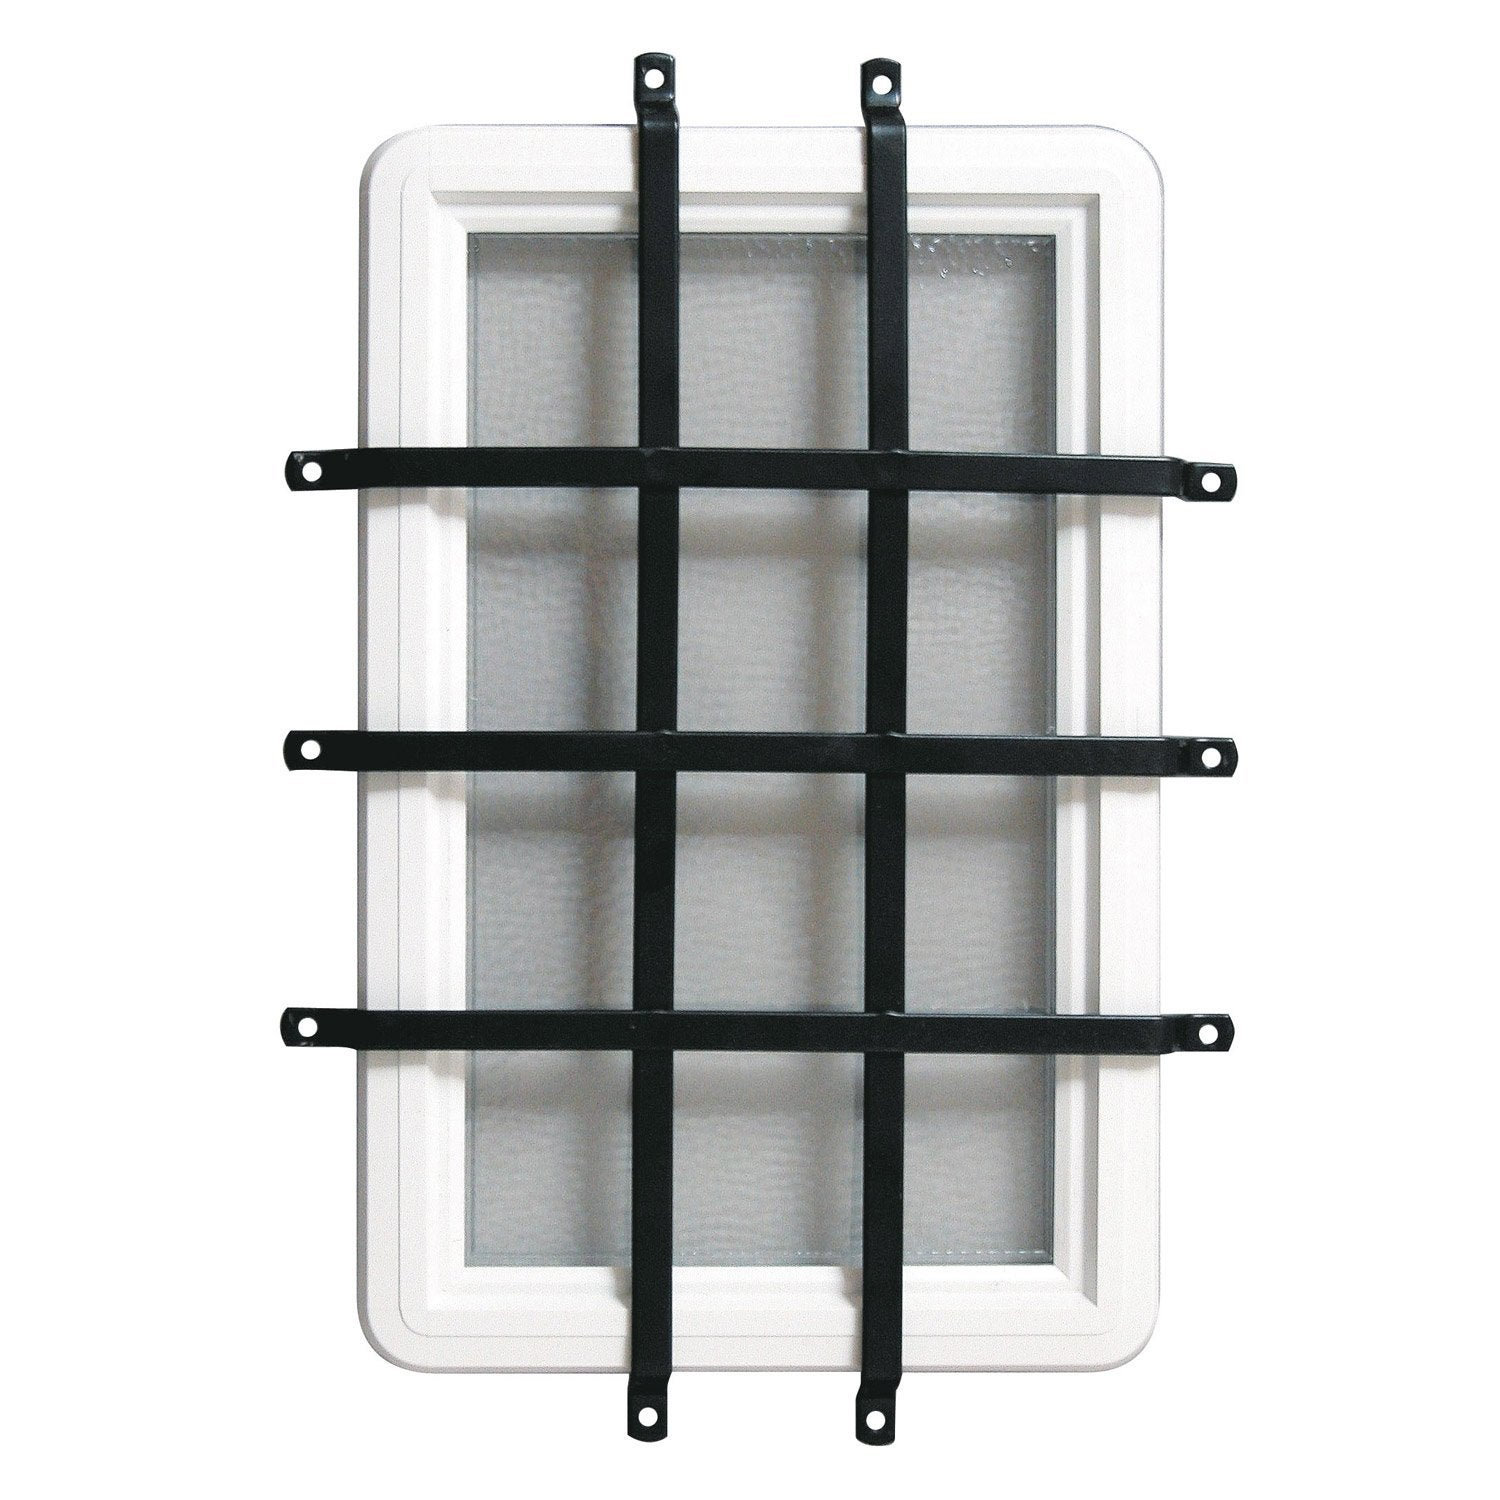 Grille anti effraction pour porte de garage coulissante for Anti effraction fenetre pvc